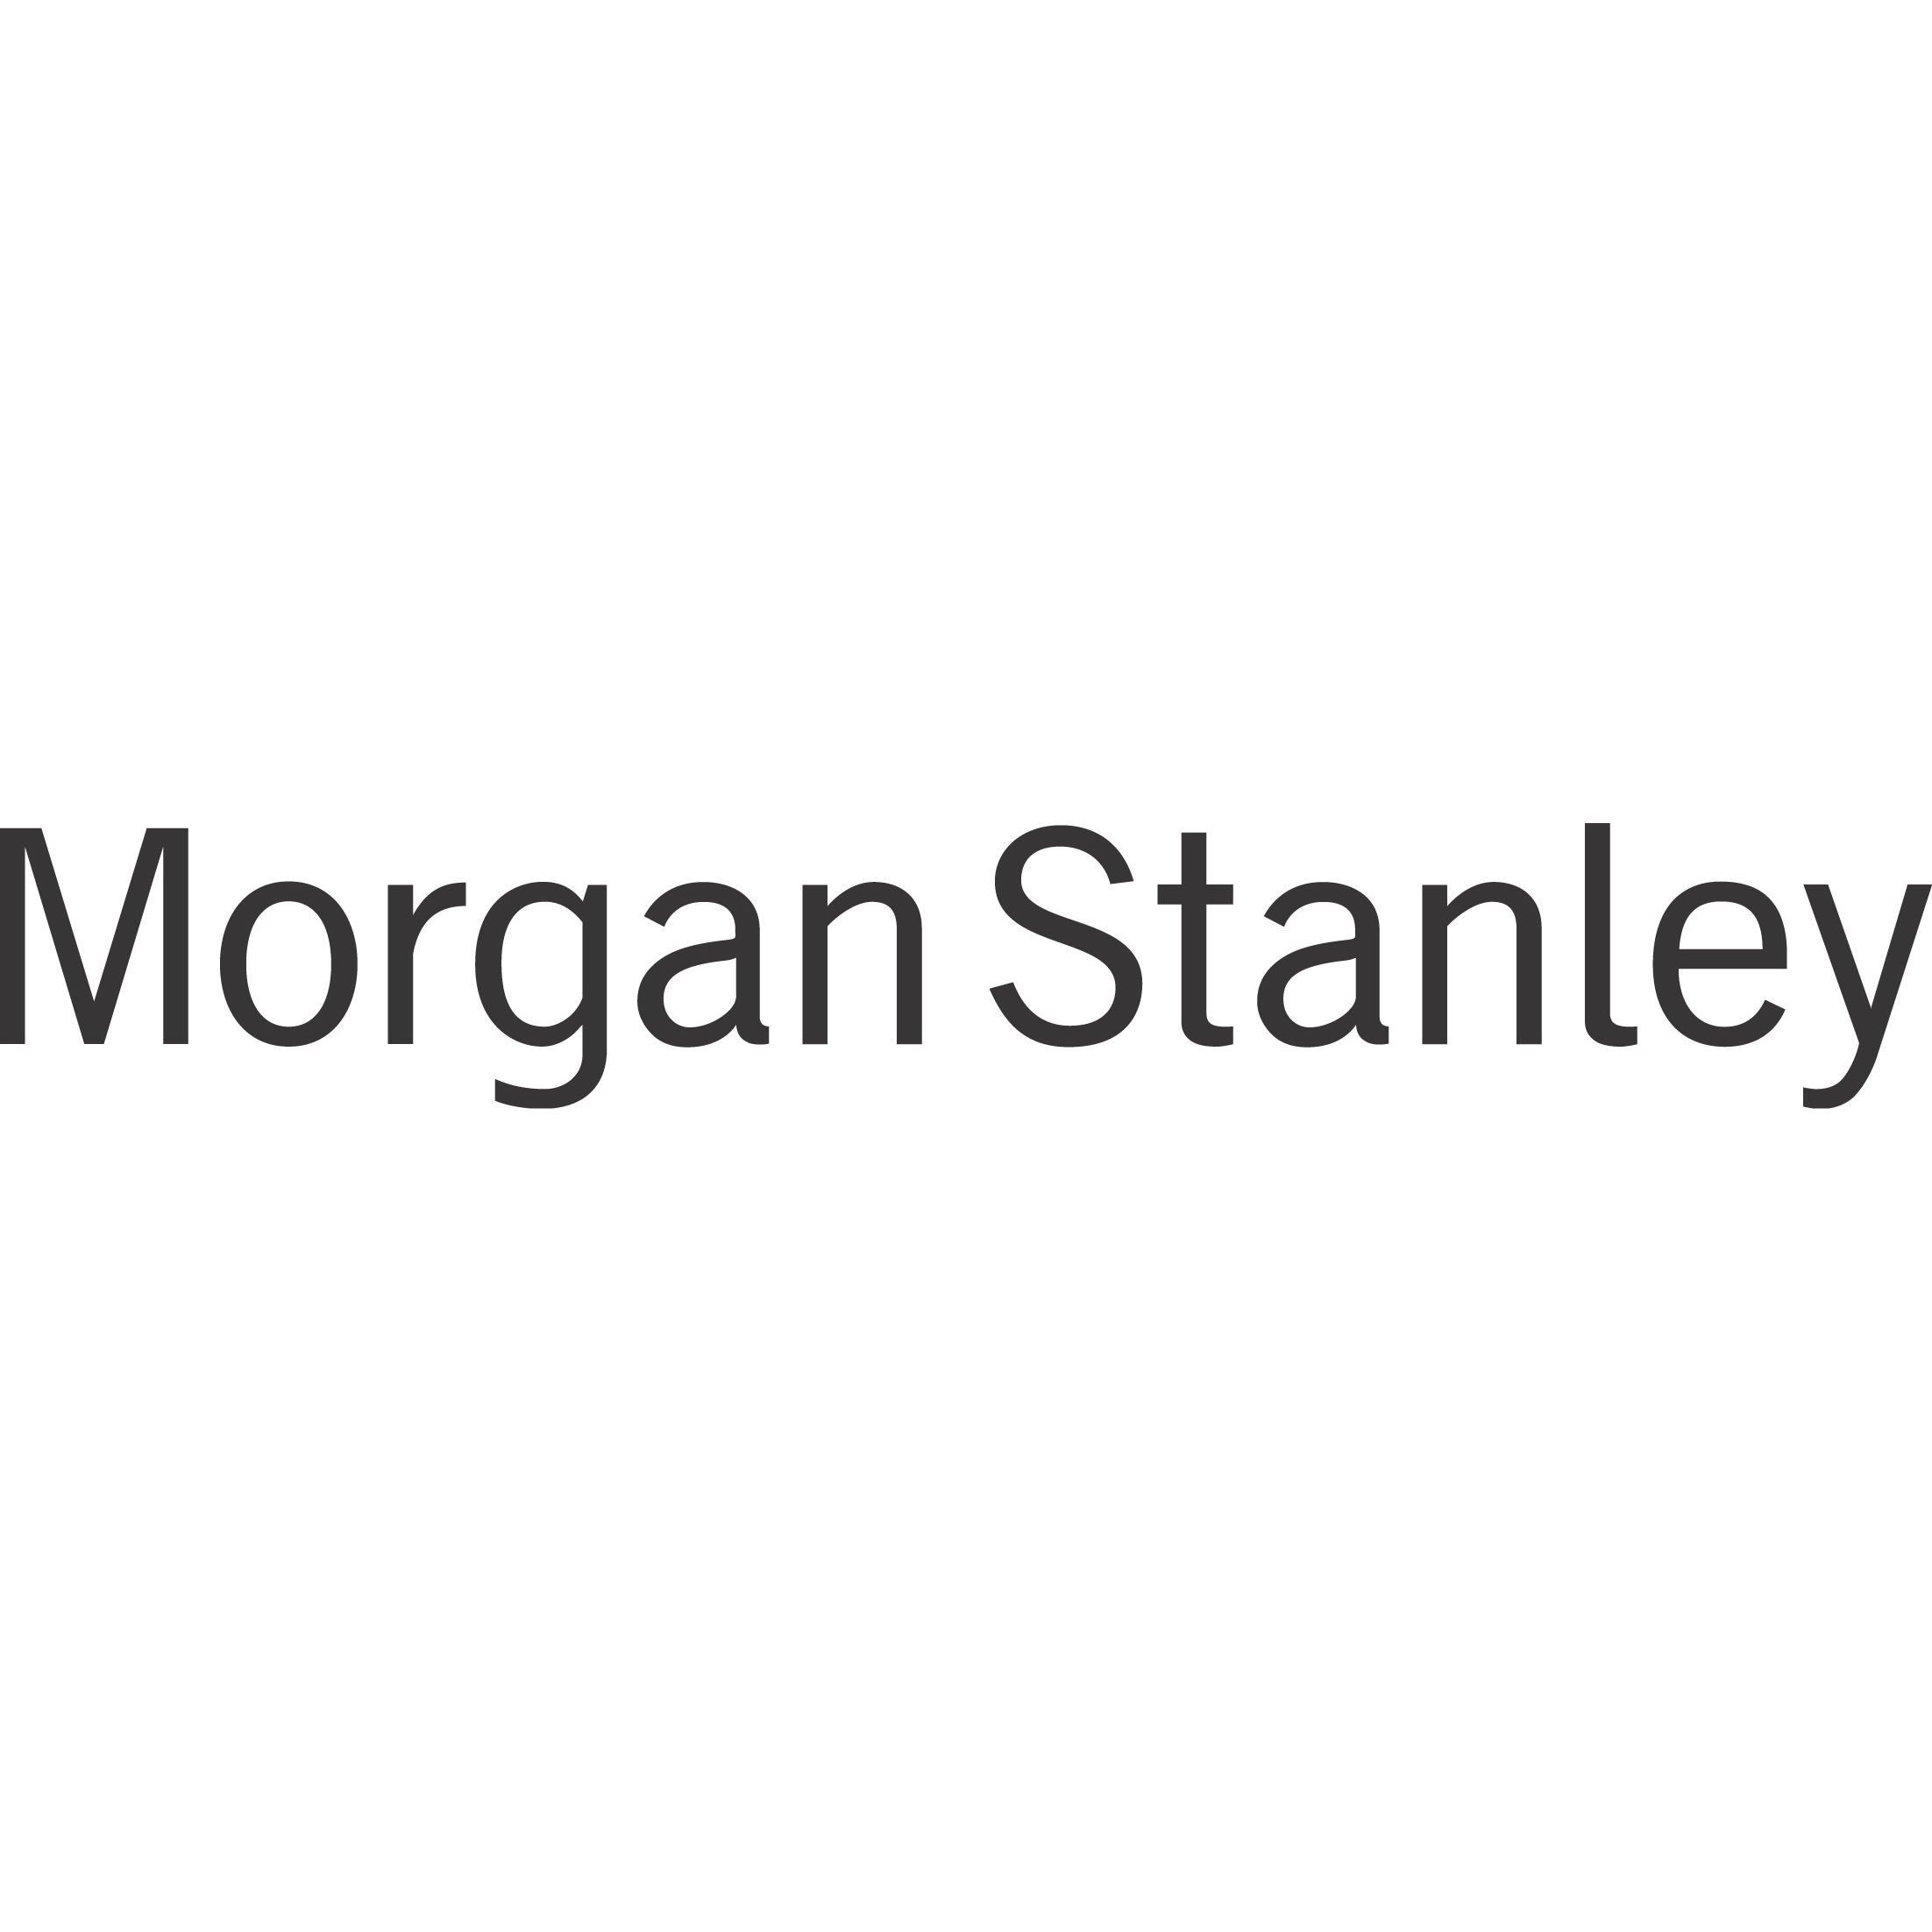 Jean-Pierre Gobic - Morgan Stanley | Financial Advisor in Sarasota,Florida